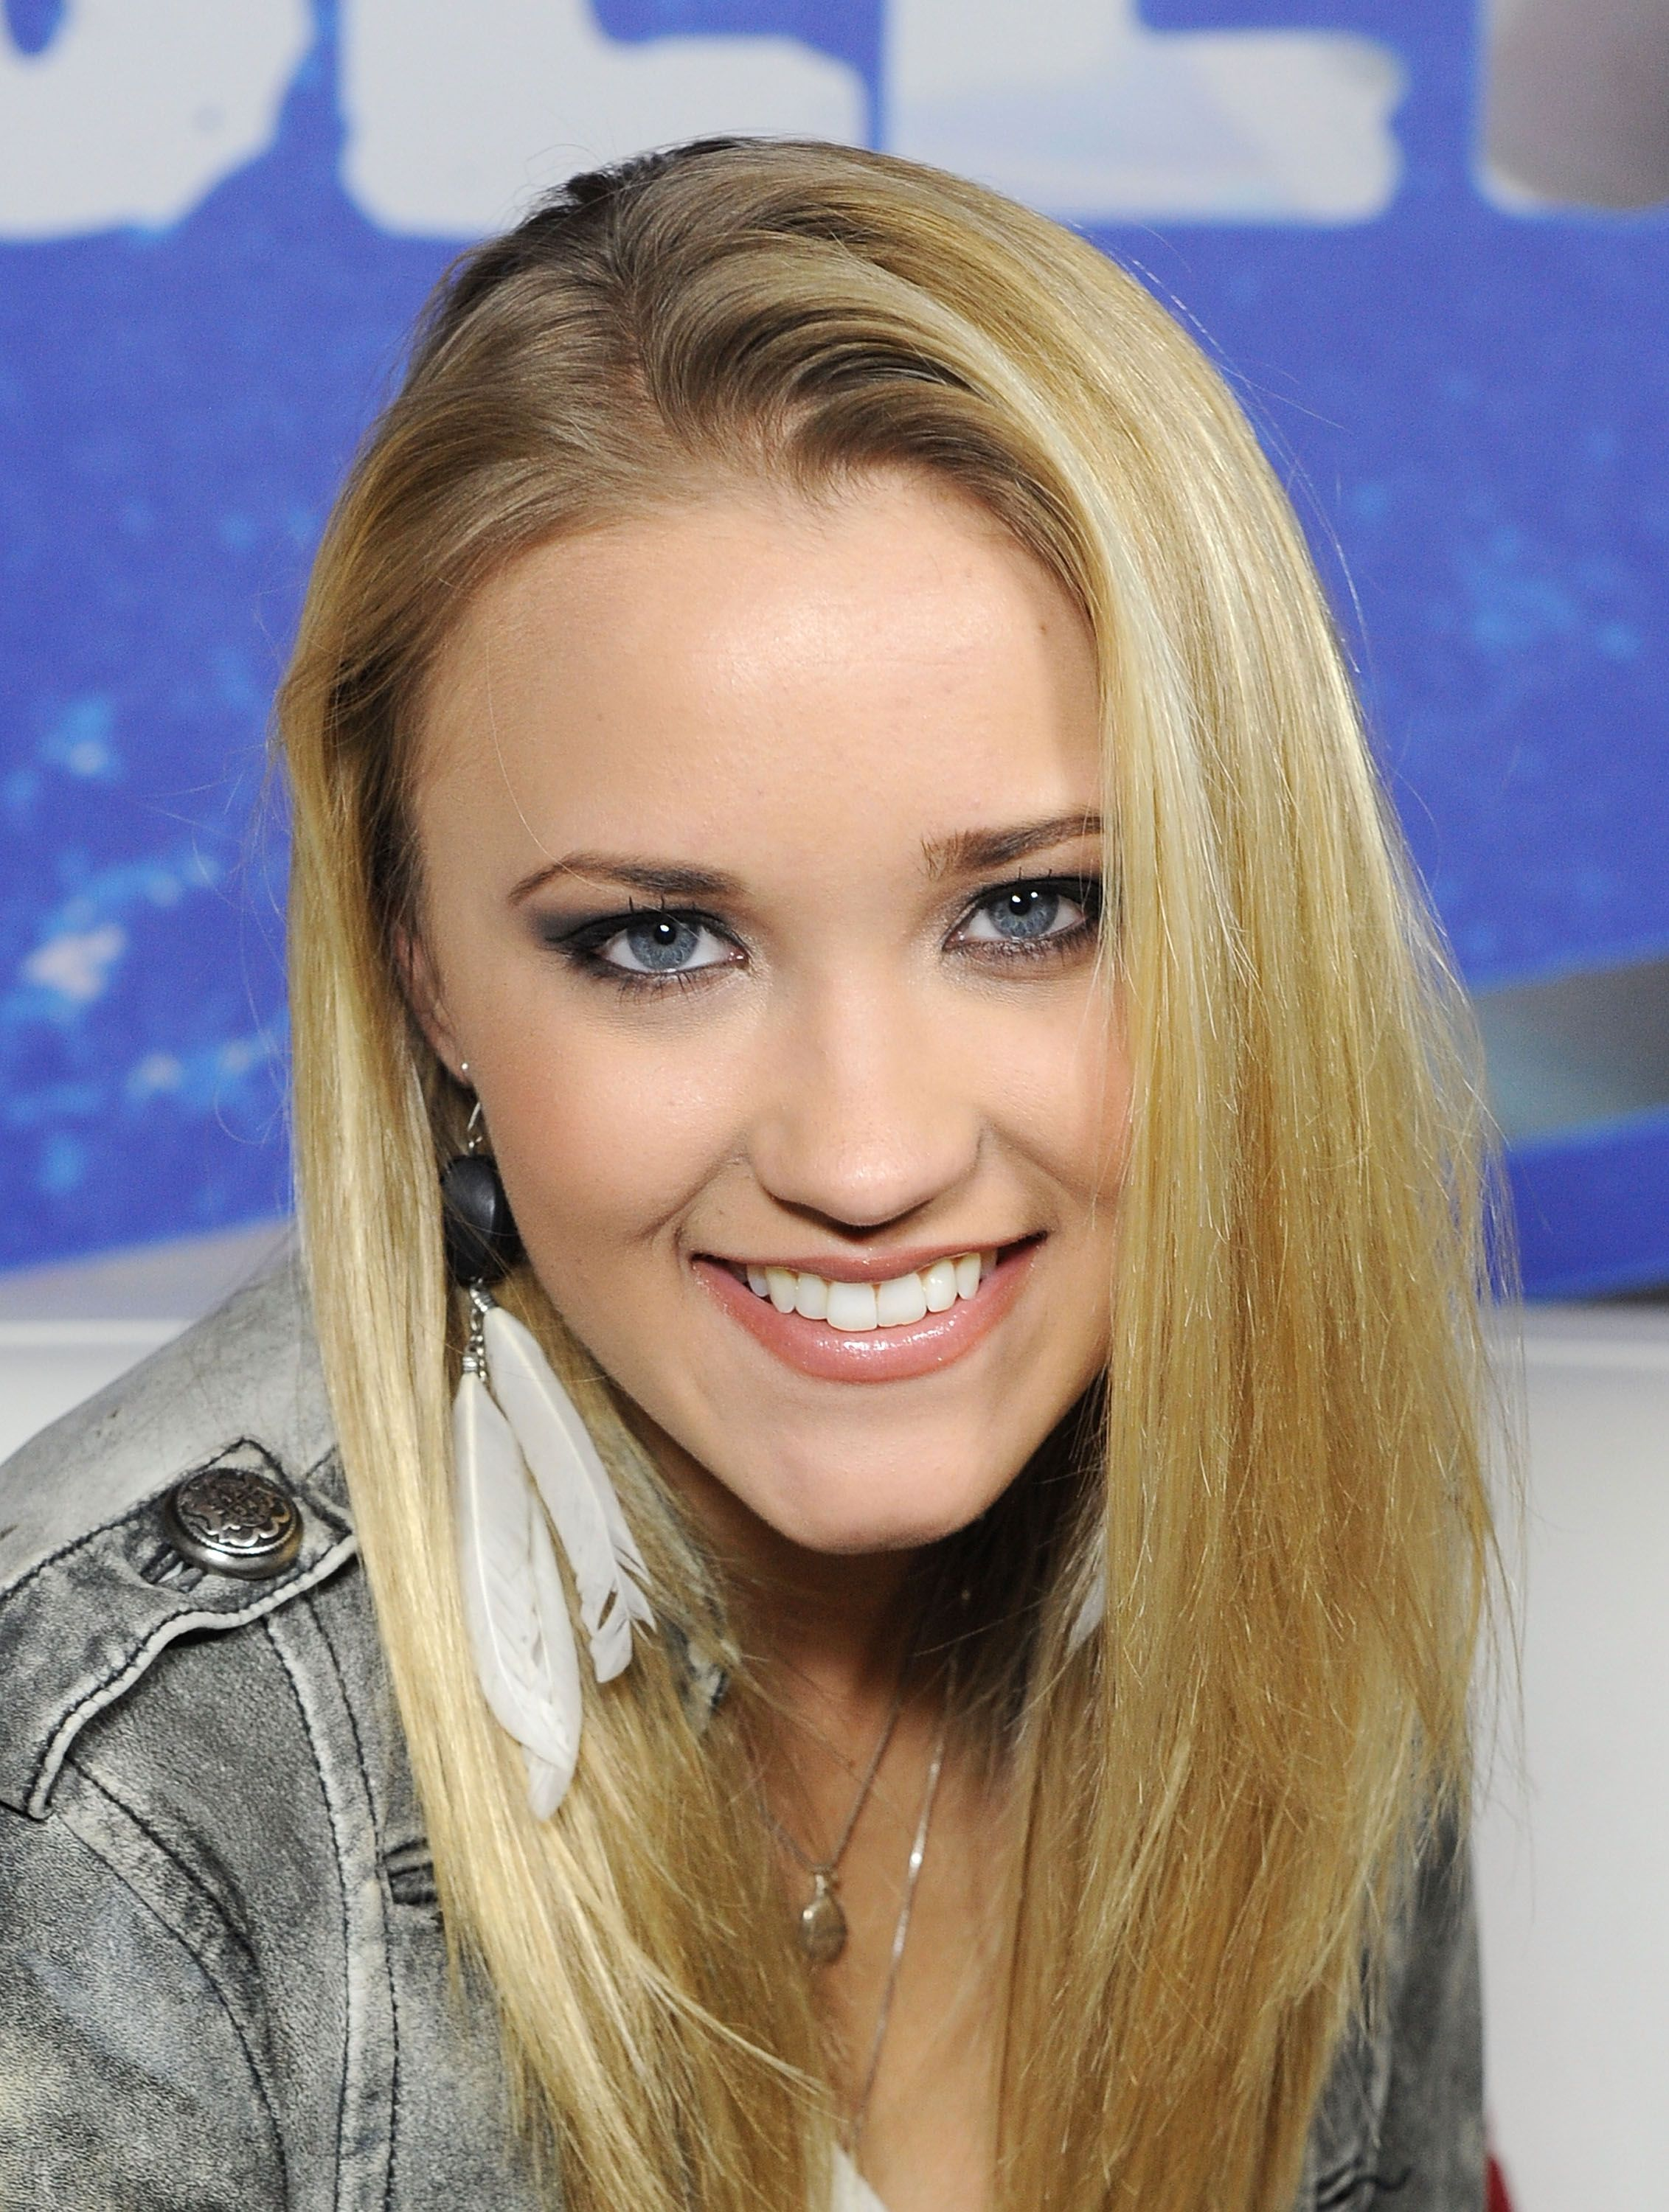 emily osment let's be friends mp3